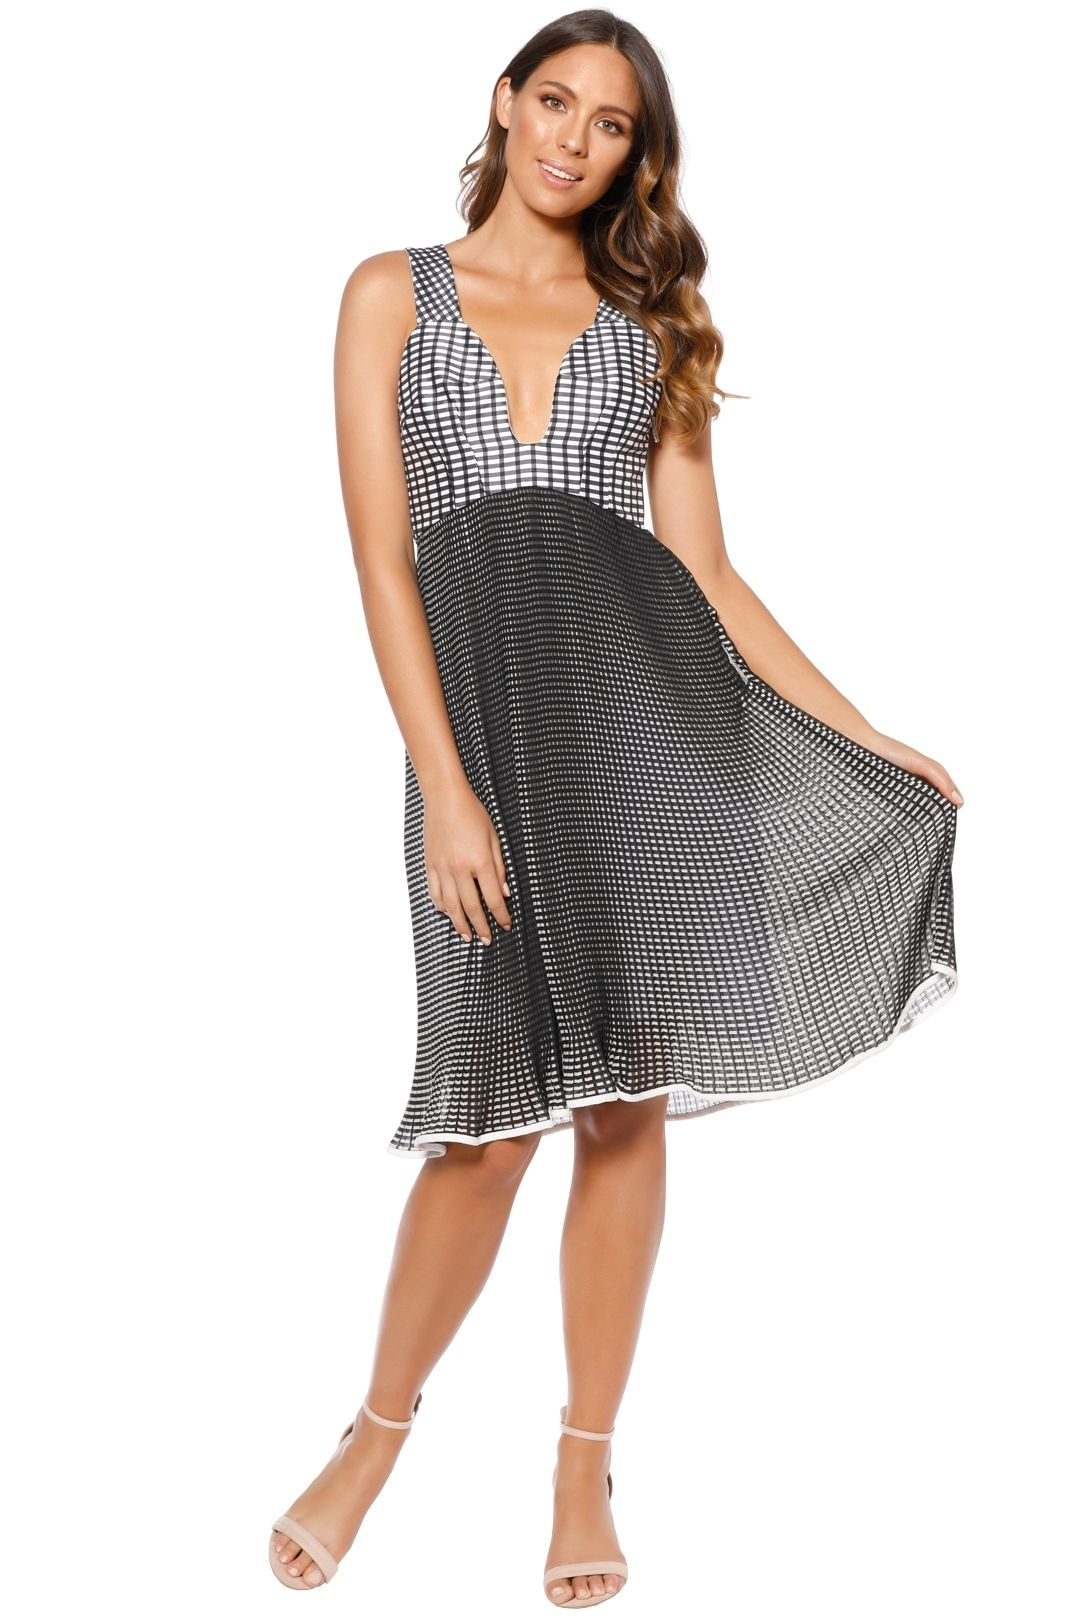 By Johnny - Iris Pleate Plunge Dress - Black White - Front